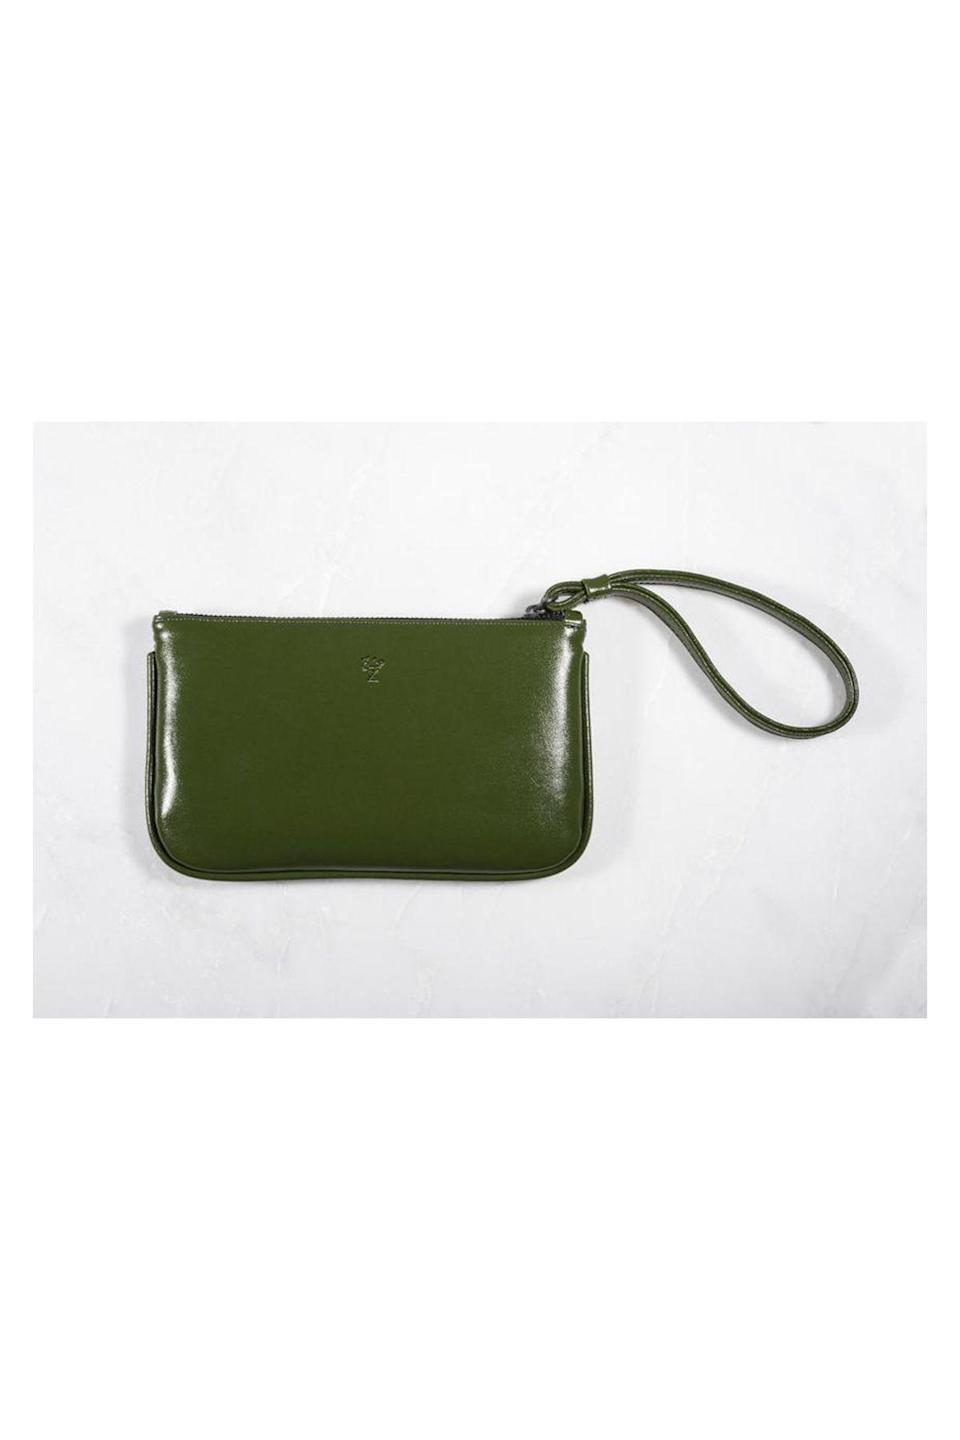 """<p><strong>Cacto</strong></p><p>cacto.green</p><p><strong>$125.00</strong></p><p><a href=""""https://cacto.green/collections/all/products/verde-wrist-wallet"""" rel=""""nofollow noopener"""" target=""""_blank"""" data-ylk=""""slk:Shop Now"""" class=""""link rapid-noclick-resp"""">Shop Now</a></p><p>A pioneer of the cactus leather movement, Cacto creates each bag from organic, cruelty free, and non-toxic cactus leather. They even water the cacti with rainwater, no irrigation system required! </p>"""